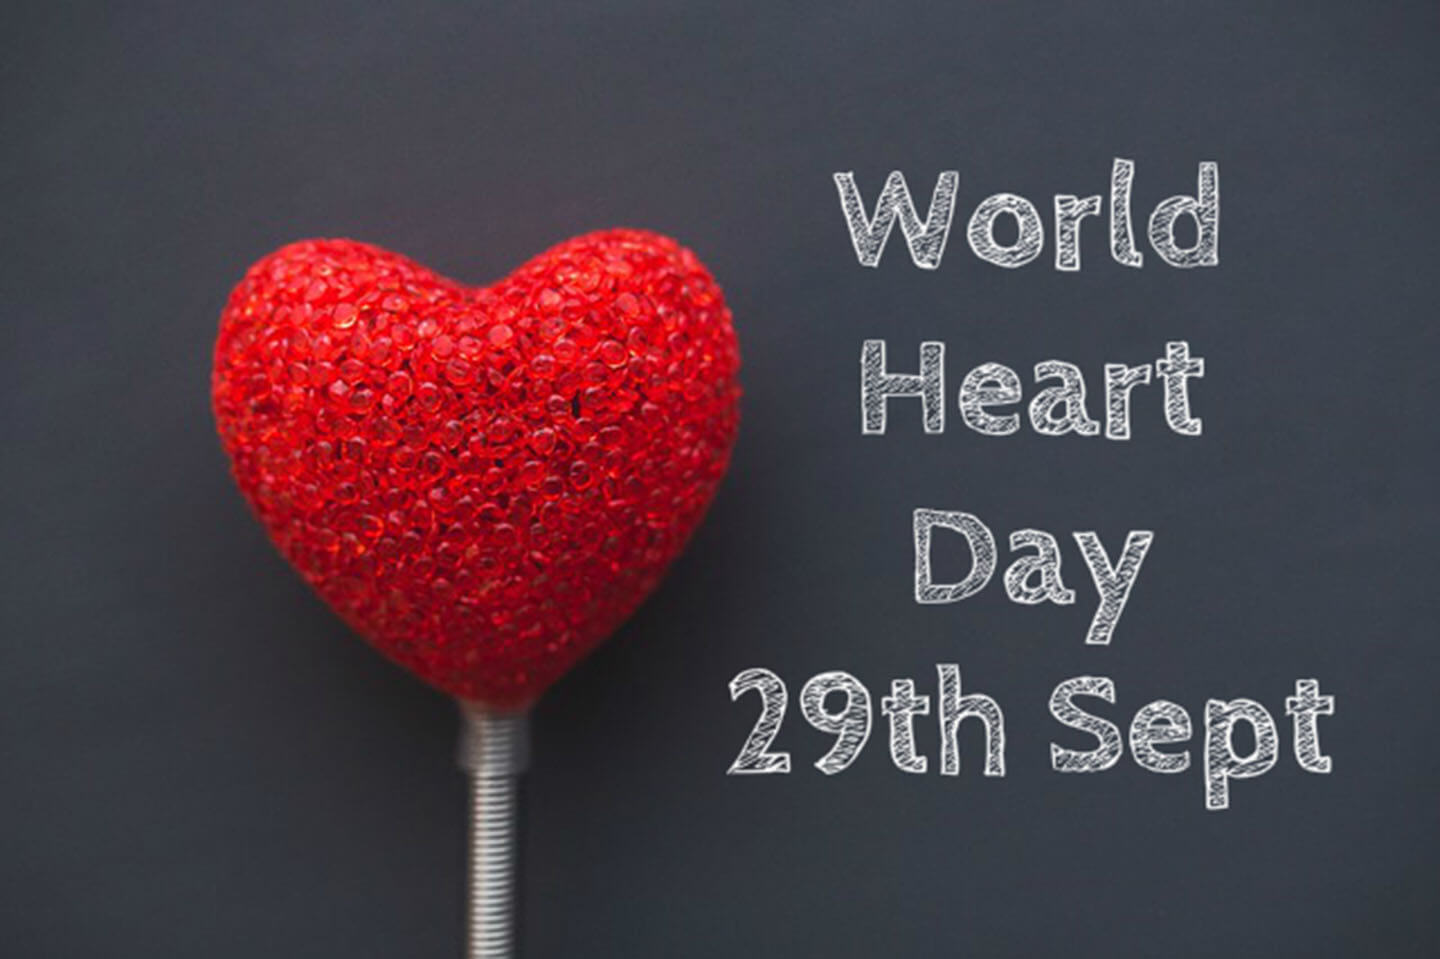 world heart day 29 september picture image mobile pc wallpaper